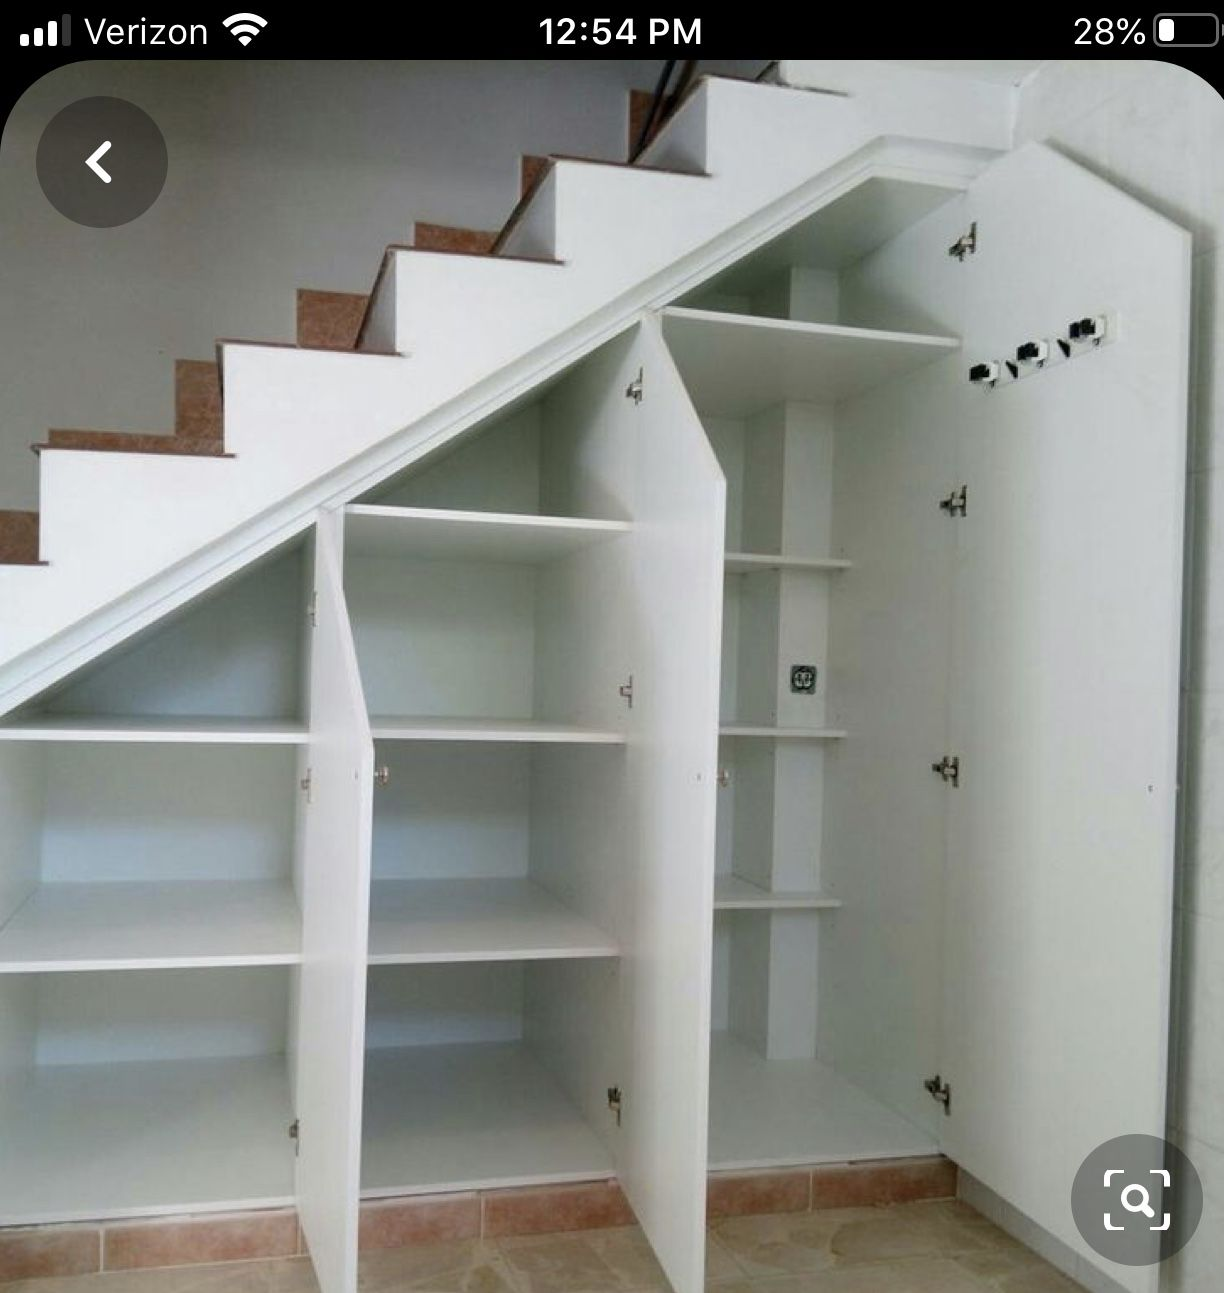 60 Unbelievable Under Stairs Storage Space Solutions: Pin By Kerenjaffe On מטבחים In 2020 (With Images